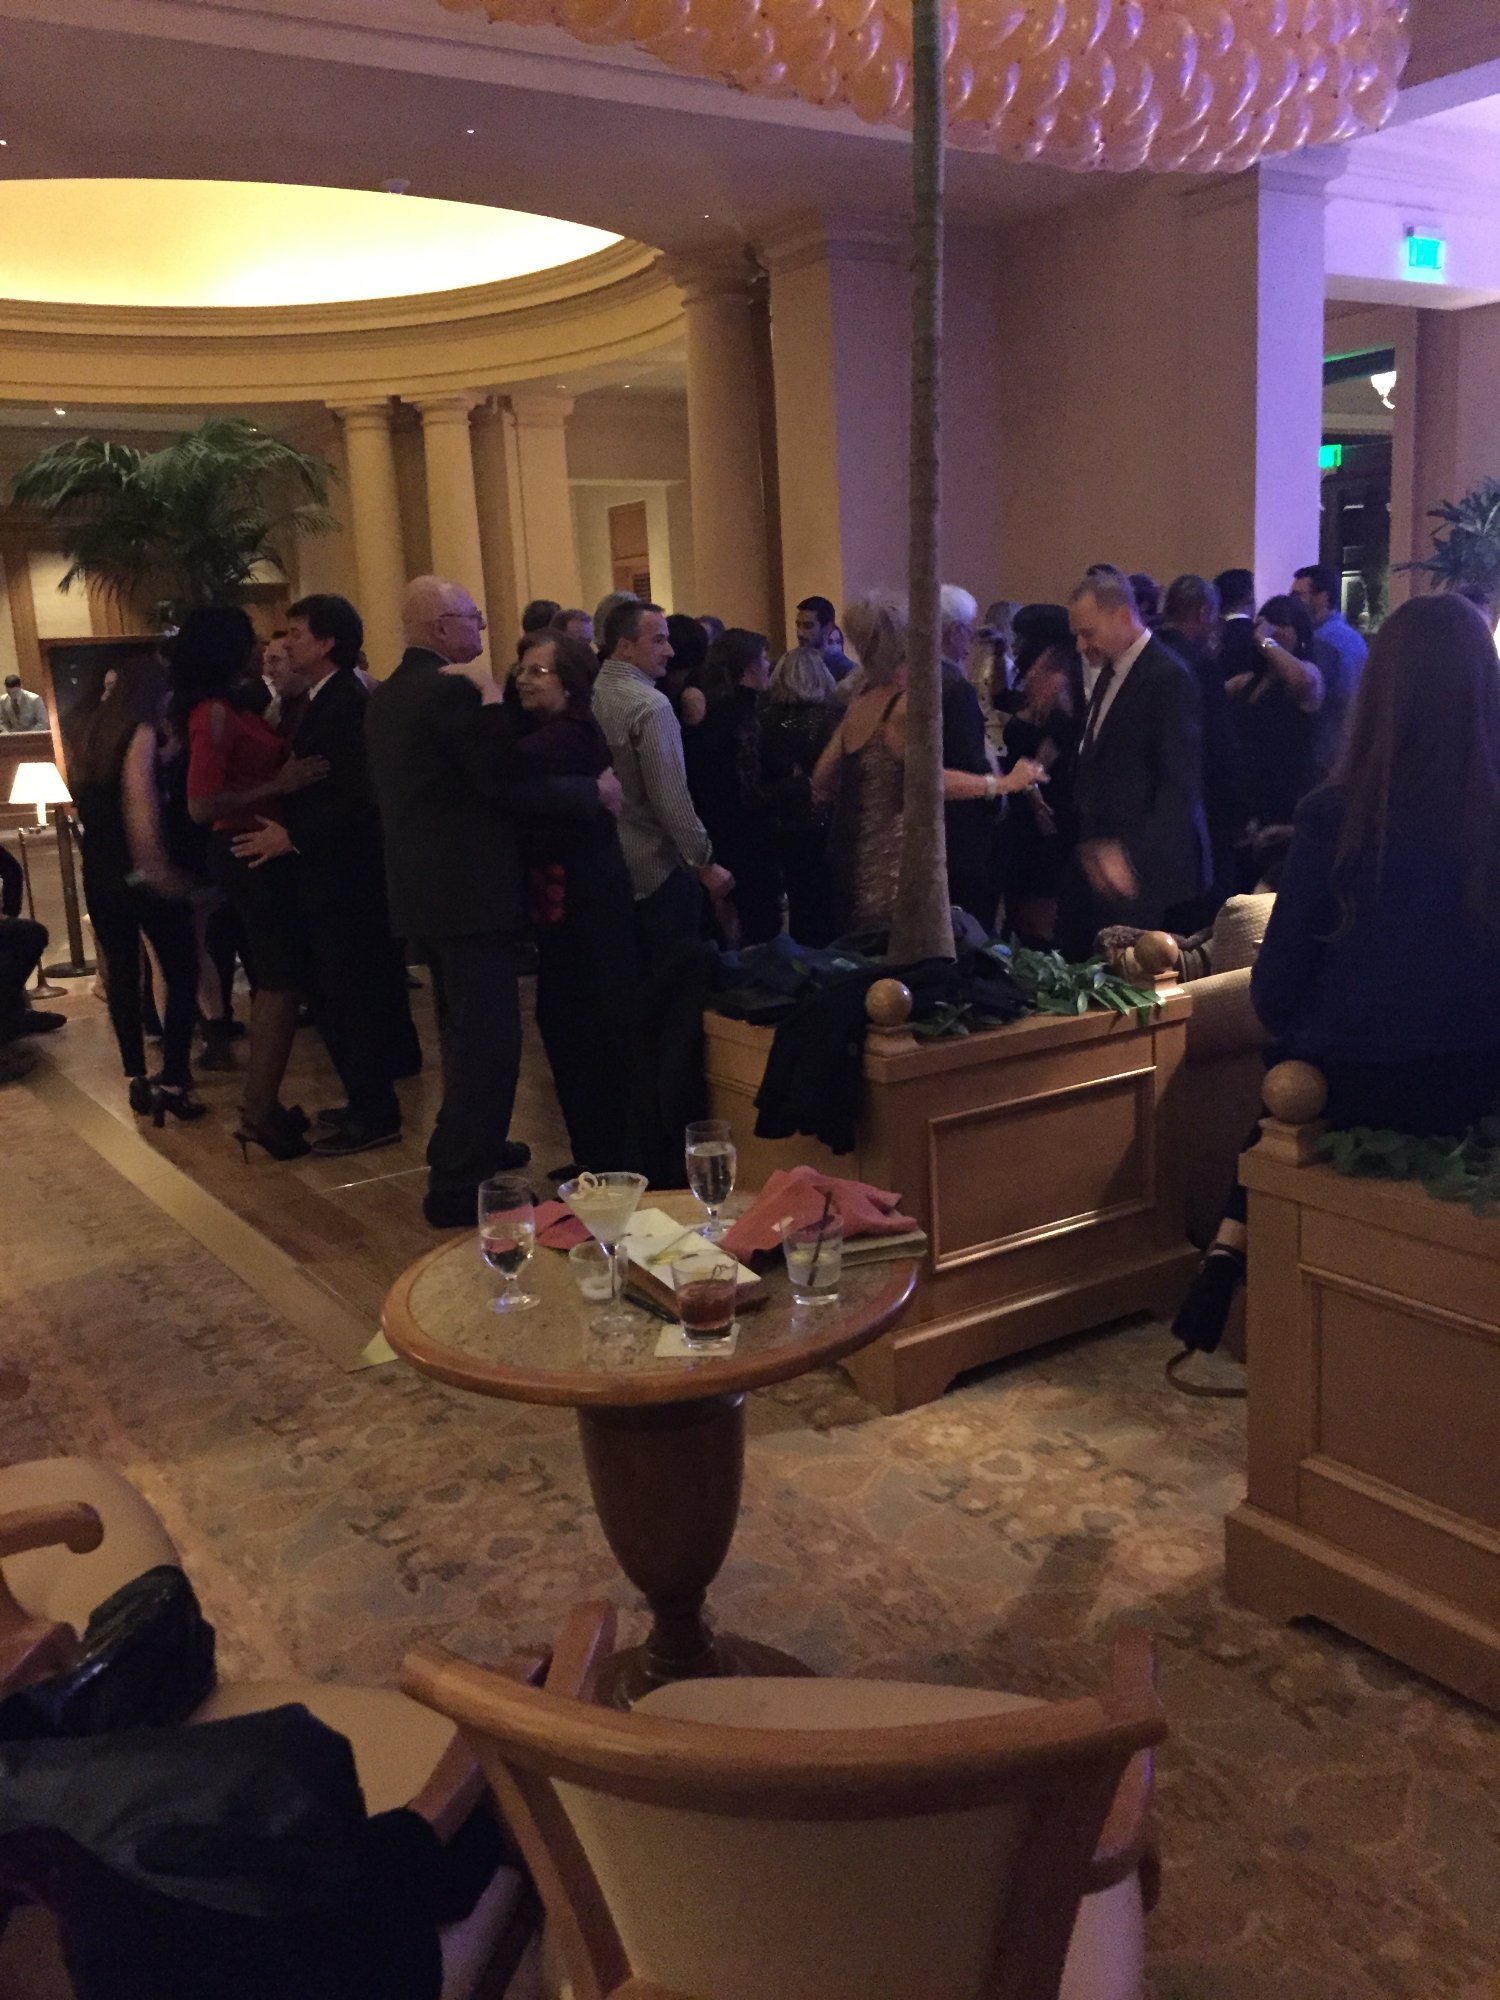 New Year's Eve at Pelican Hill Resort